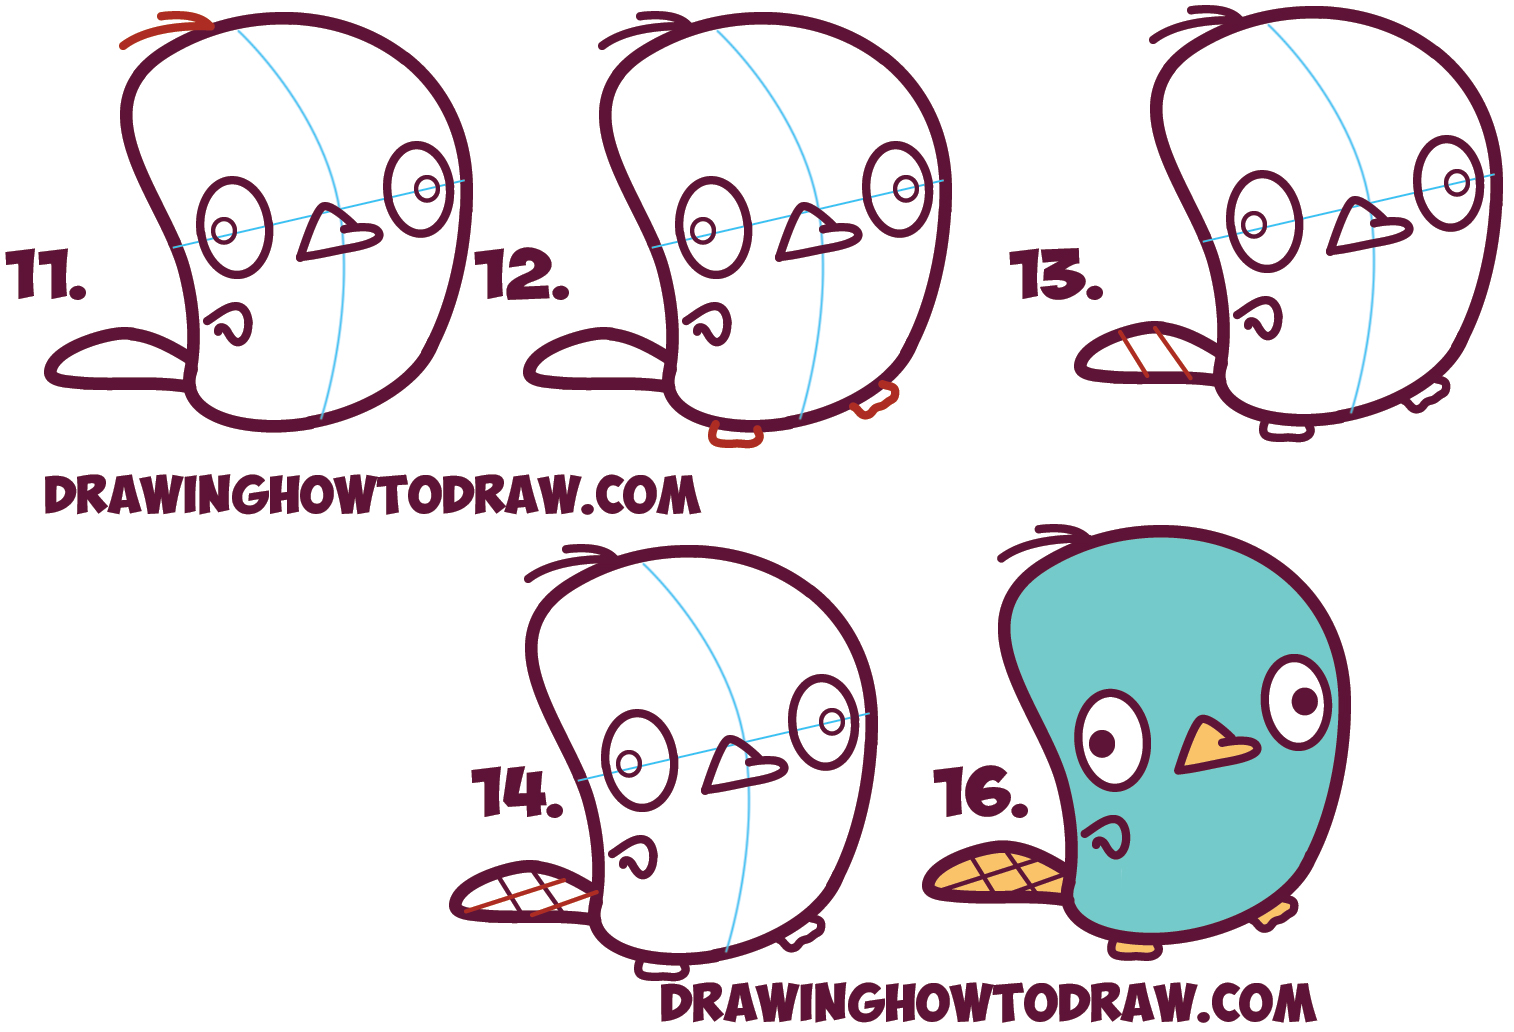 Learn How to Draw Cute Kawaii / Chibi Perry the Platypus from Phineas and Ferb in Simple Step by Step Drawing Lesson for Kids